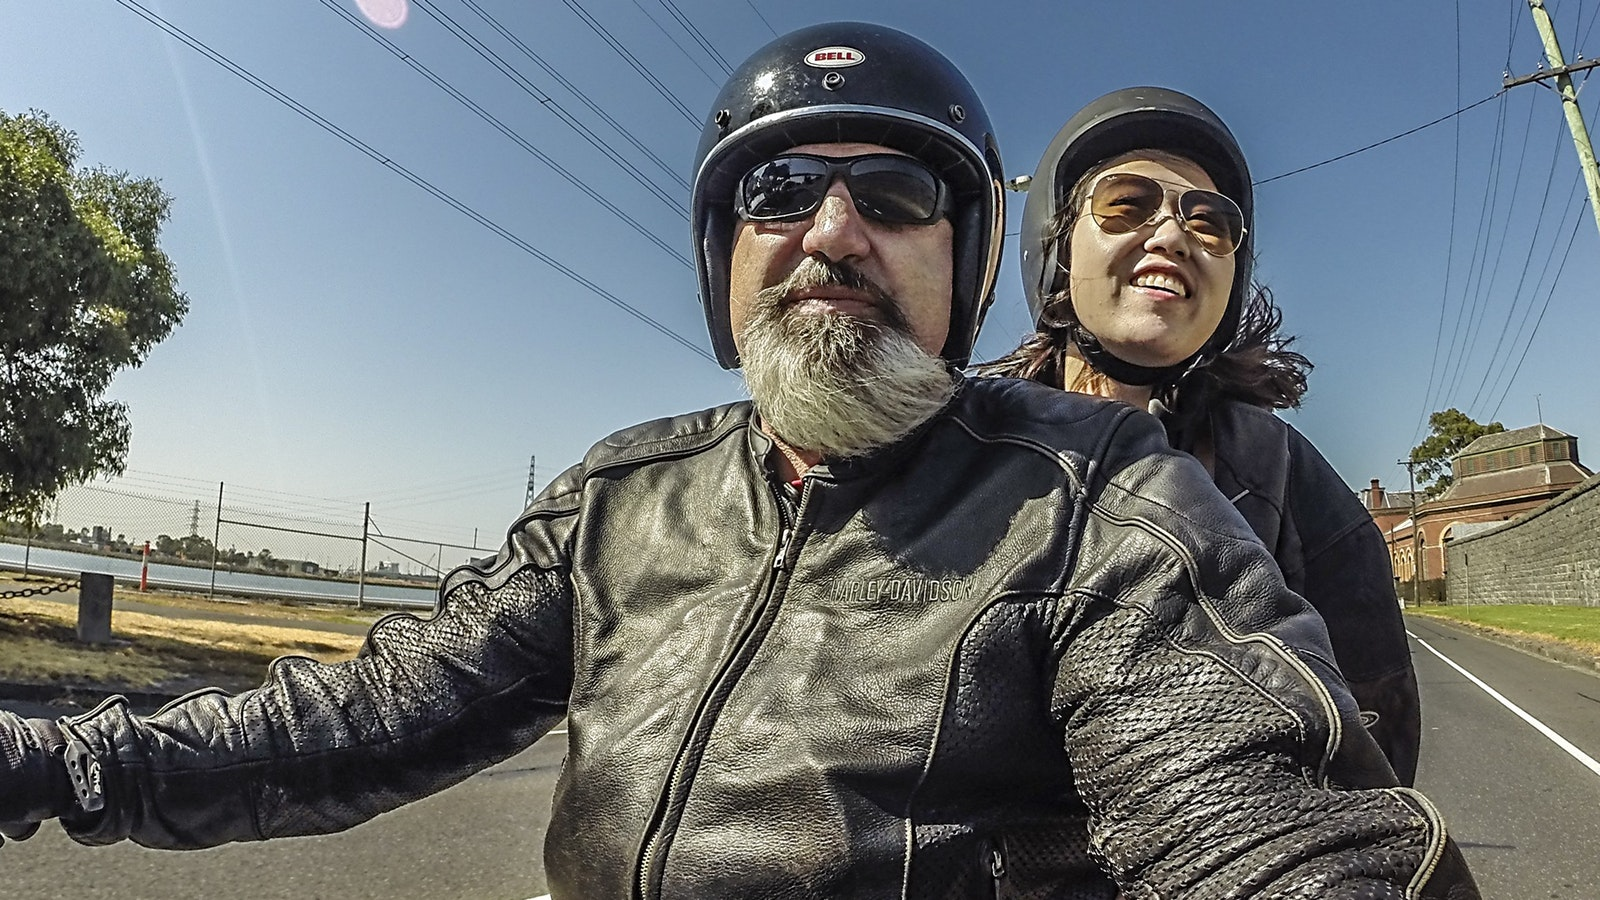 The joy of riding as a passenger on a Harley Davidson and the smile we put on peoples faces.